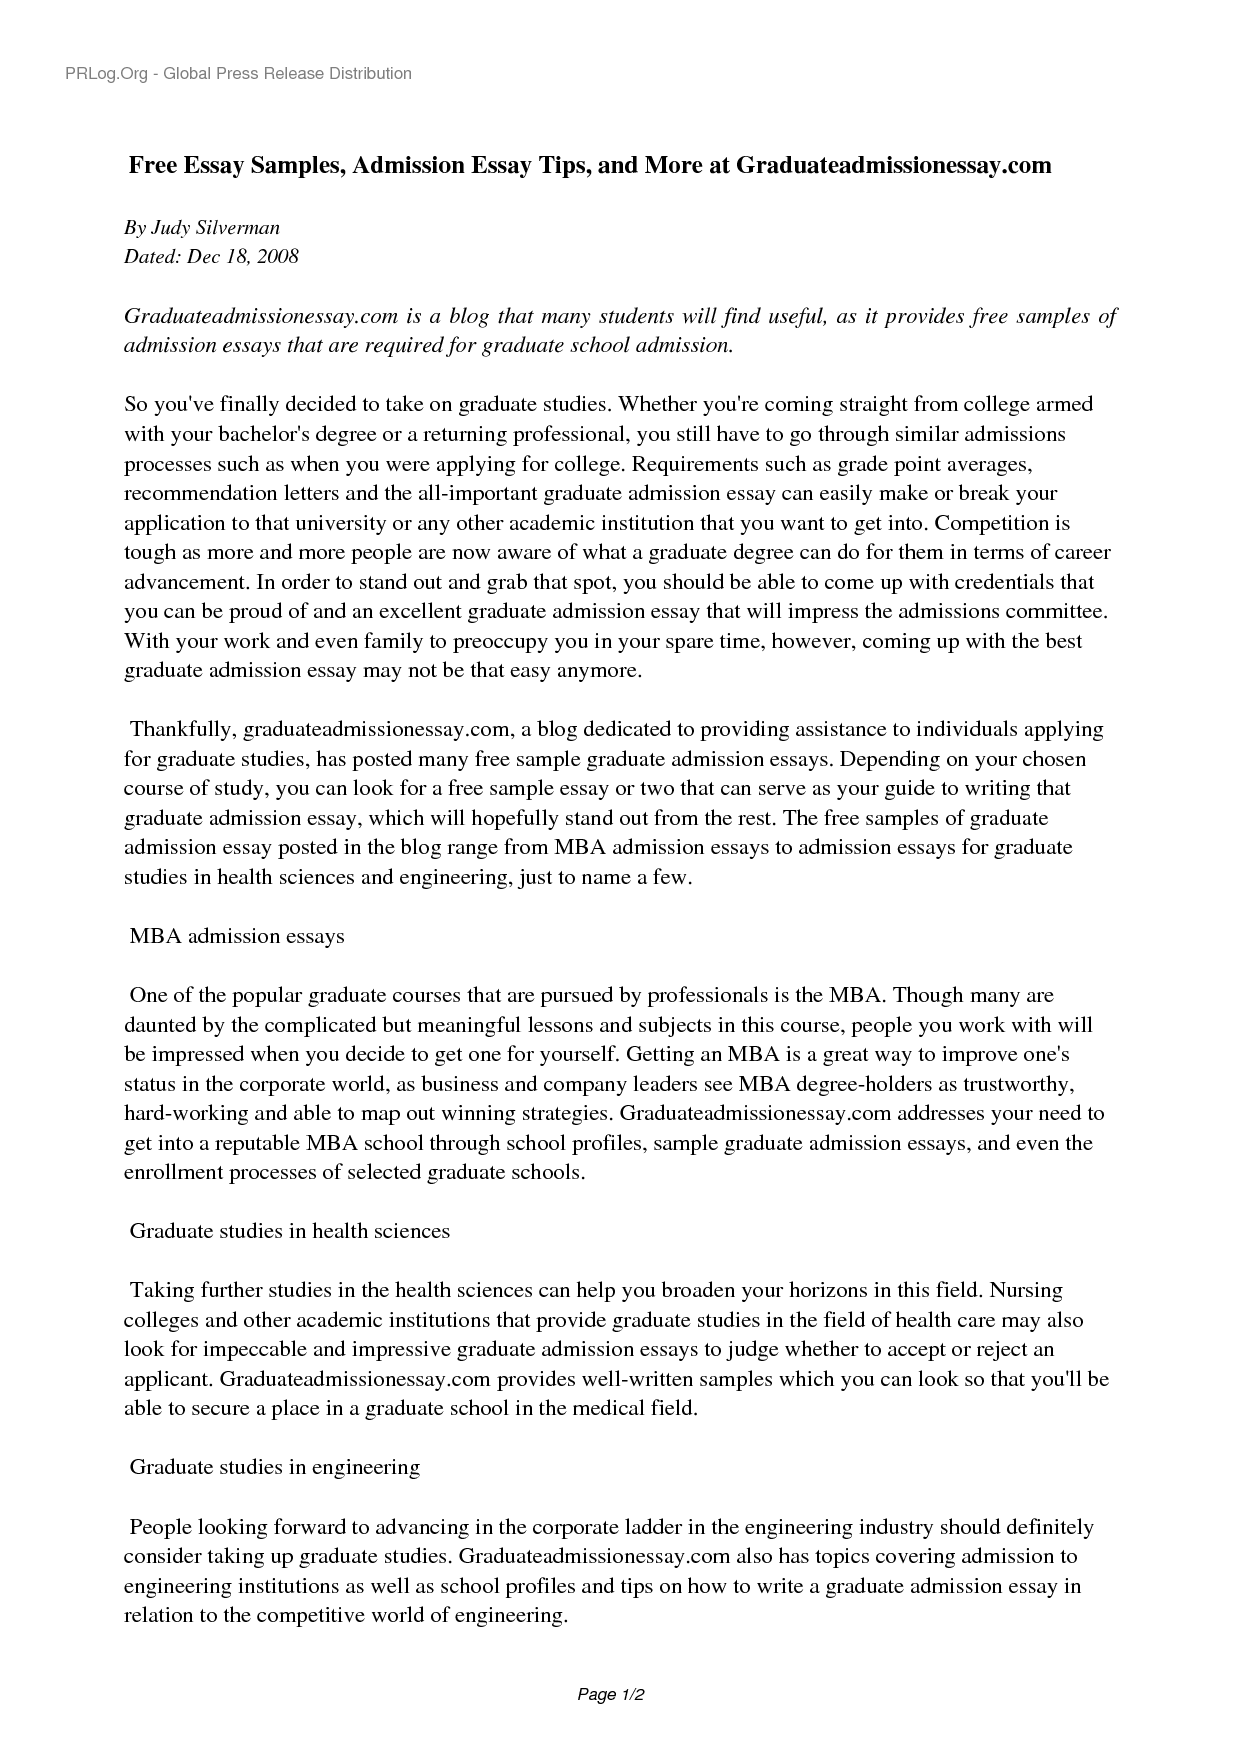 Art institute atlanta application essay